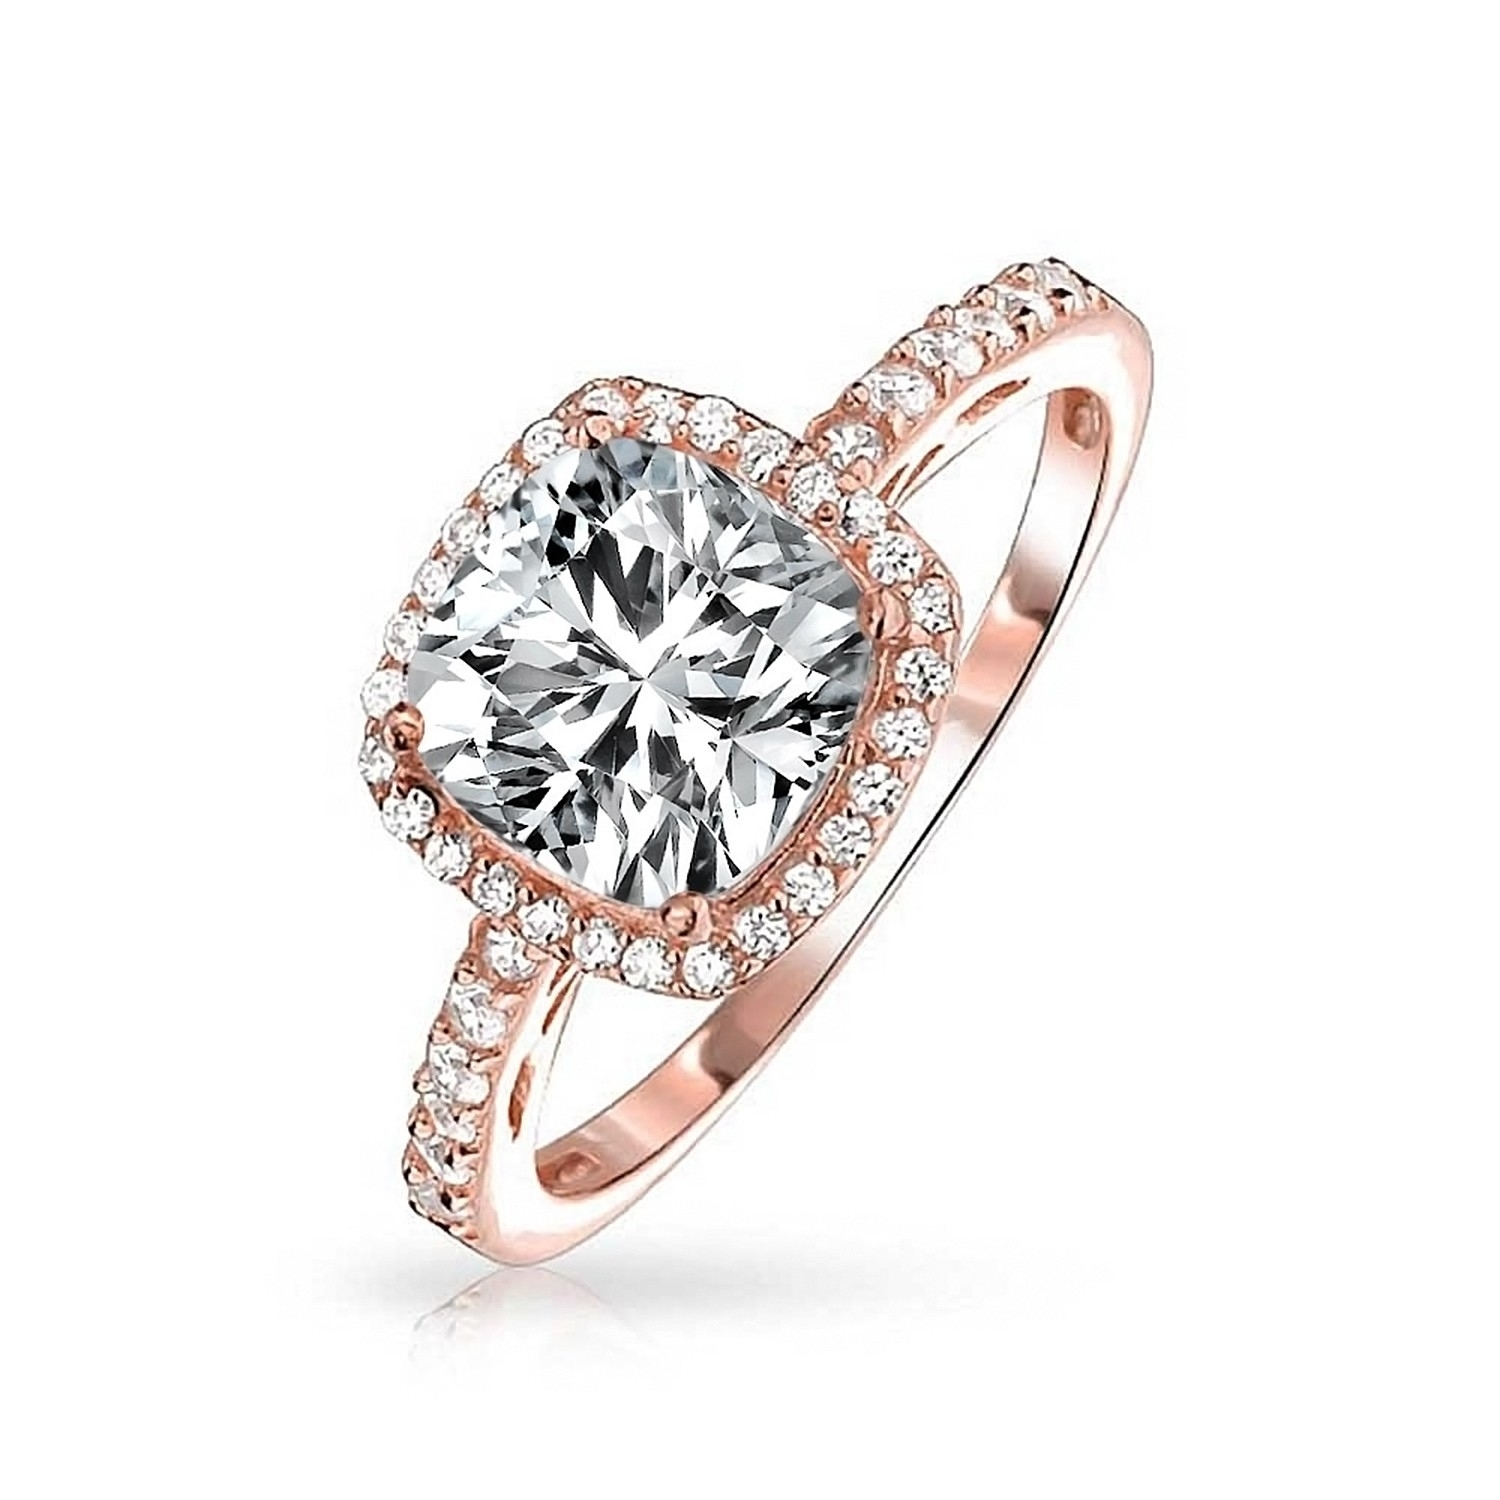 Vintage Style Sterling Silver Cushion Cut Cz Engagement Ring Within Newest Vintage Style Rose Gold Engagement Rings (View 12 of 15)